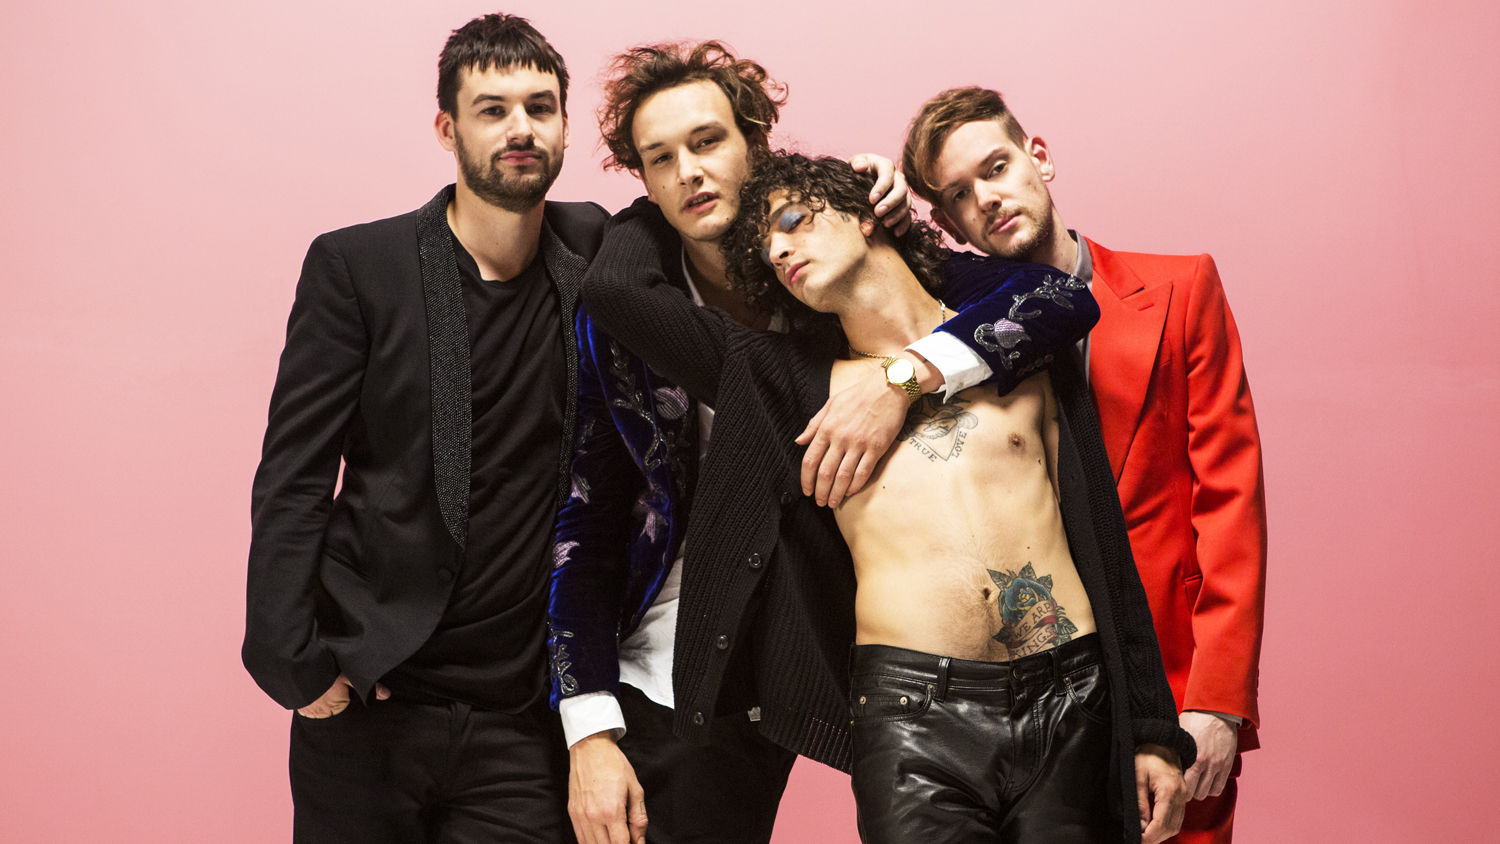 5 Questions with George Daniel of The 1975